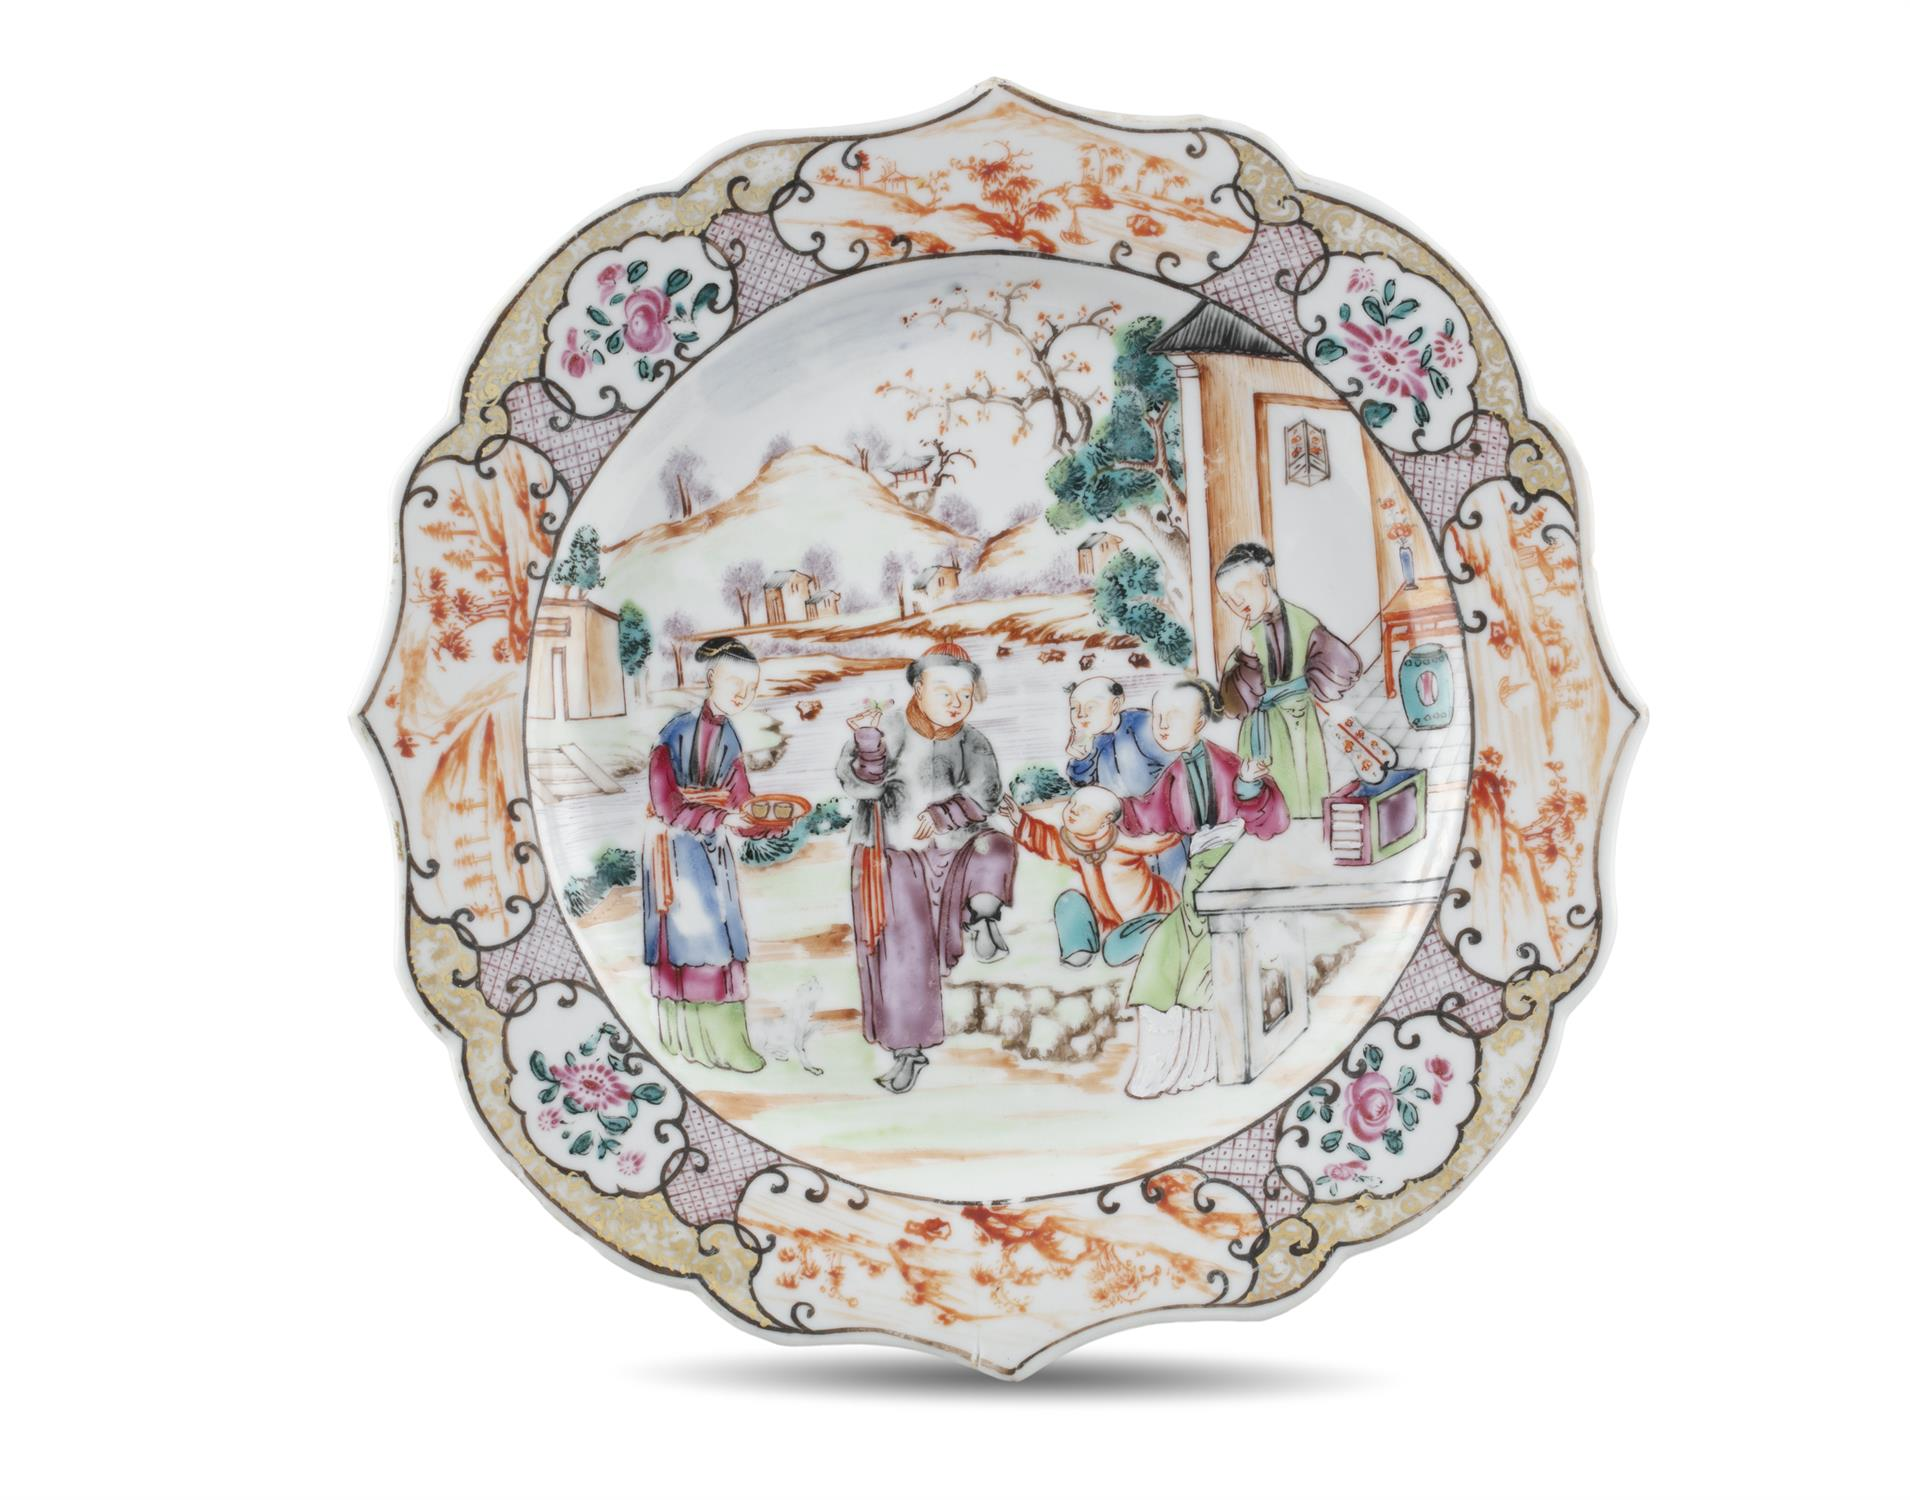 A LOBED CHINESE EXPORT 'MANDARIN' PORCELAIN PLATE China, Qing Dynasty, 18th century Richly adorned - Image 9 of 11